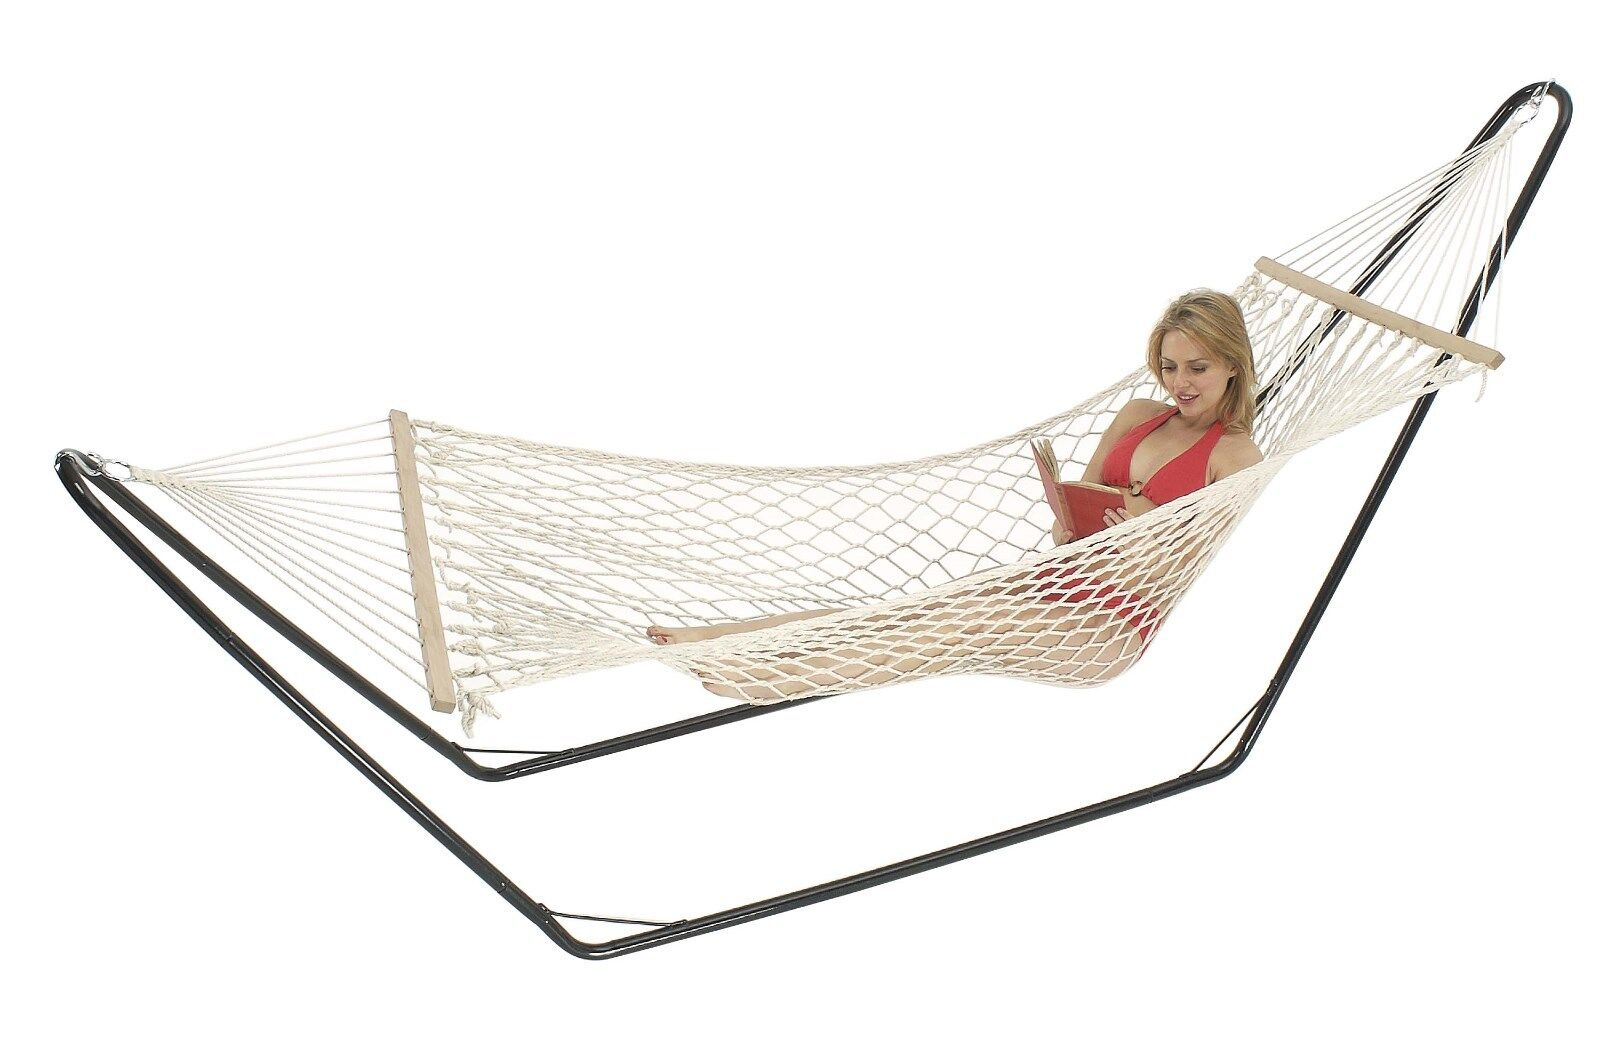 Double Hammock 5mm Cotton Rope Strong Portable Comfortable